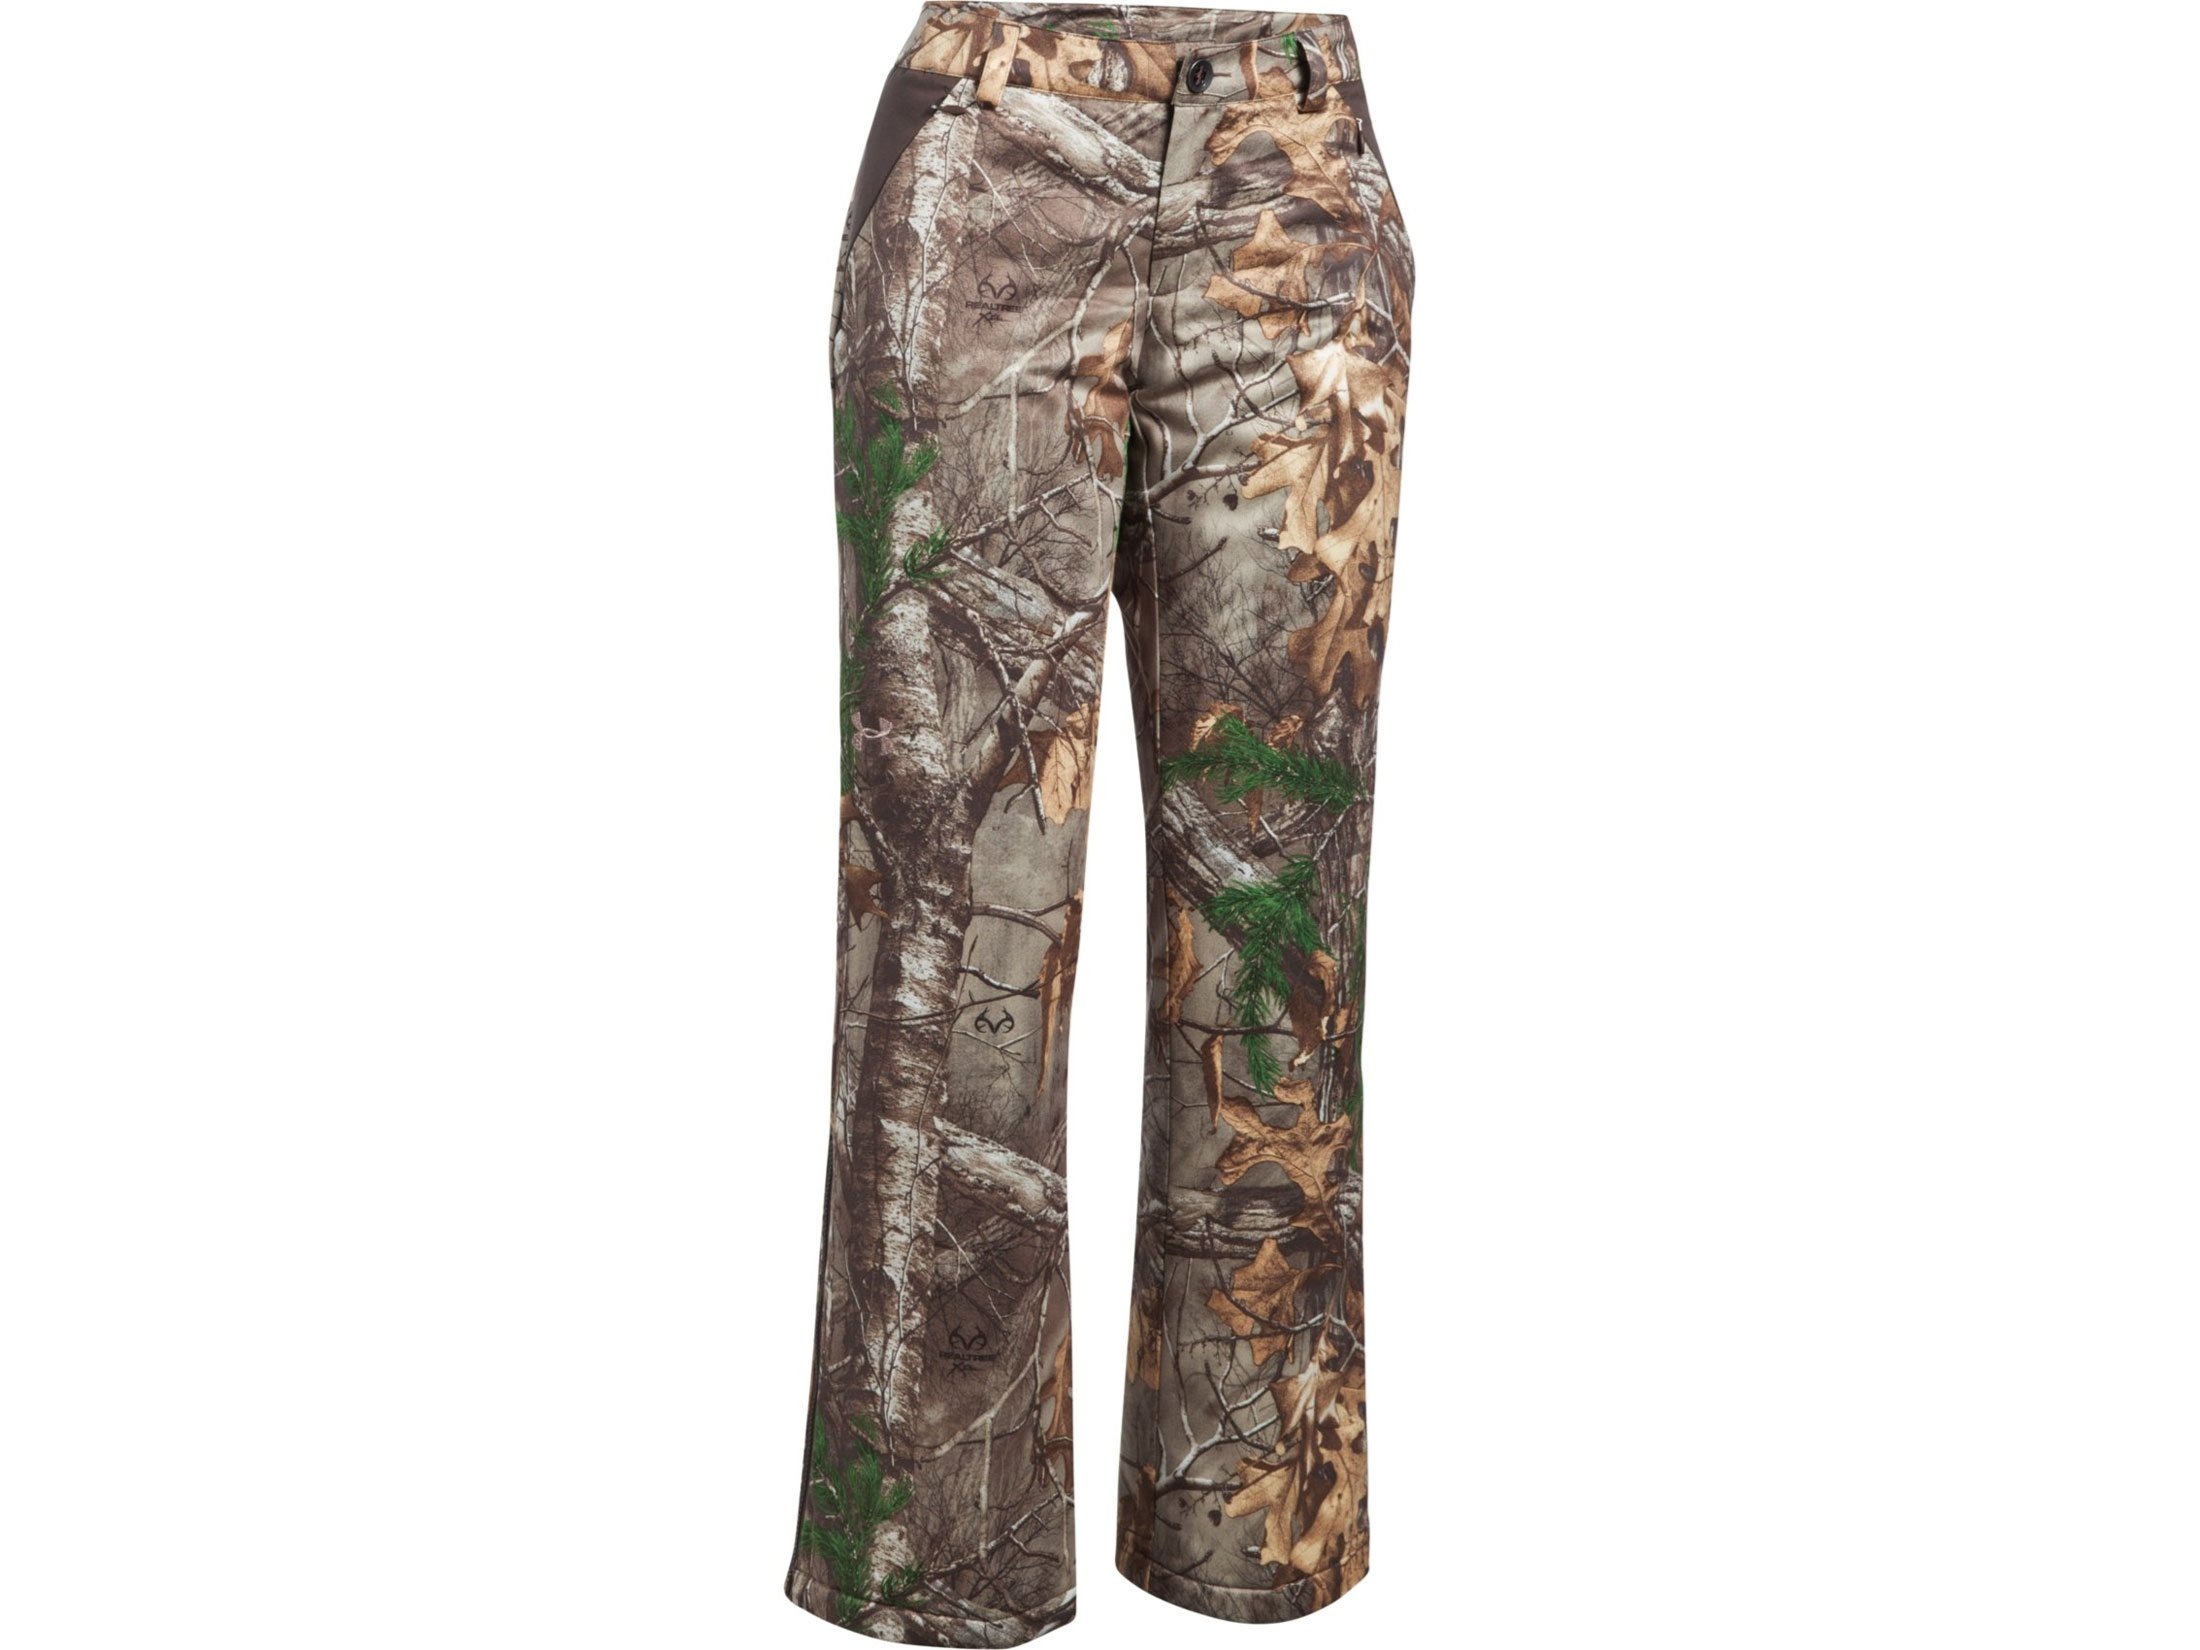 Under Armour Women's Extreme Siberian Insulated Pant - Realtree X-tra - 2